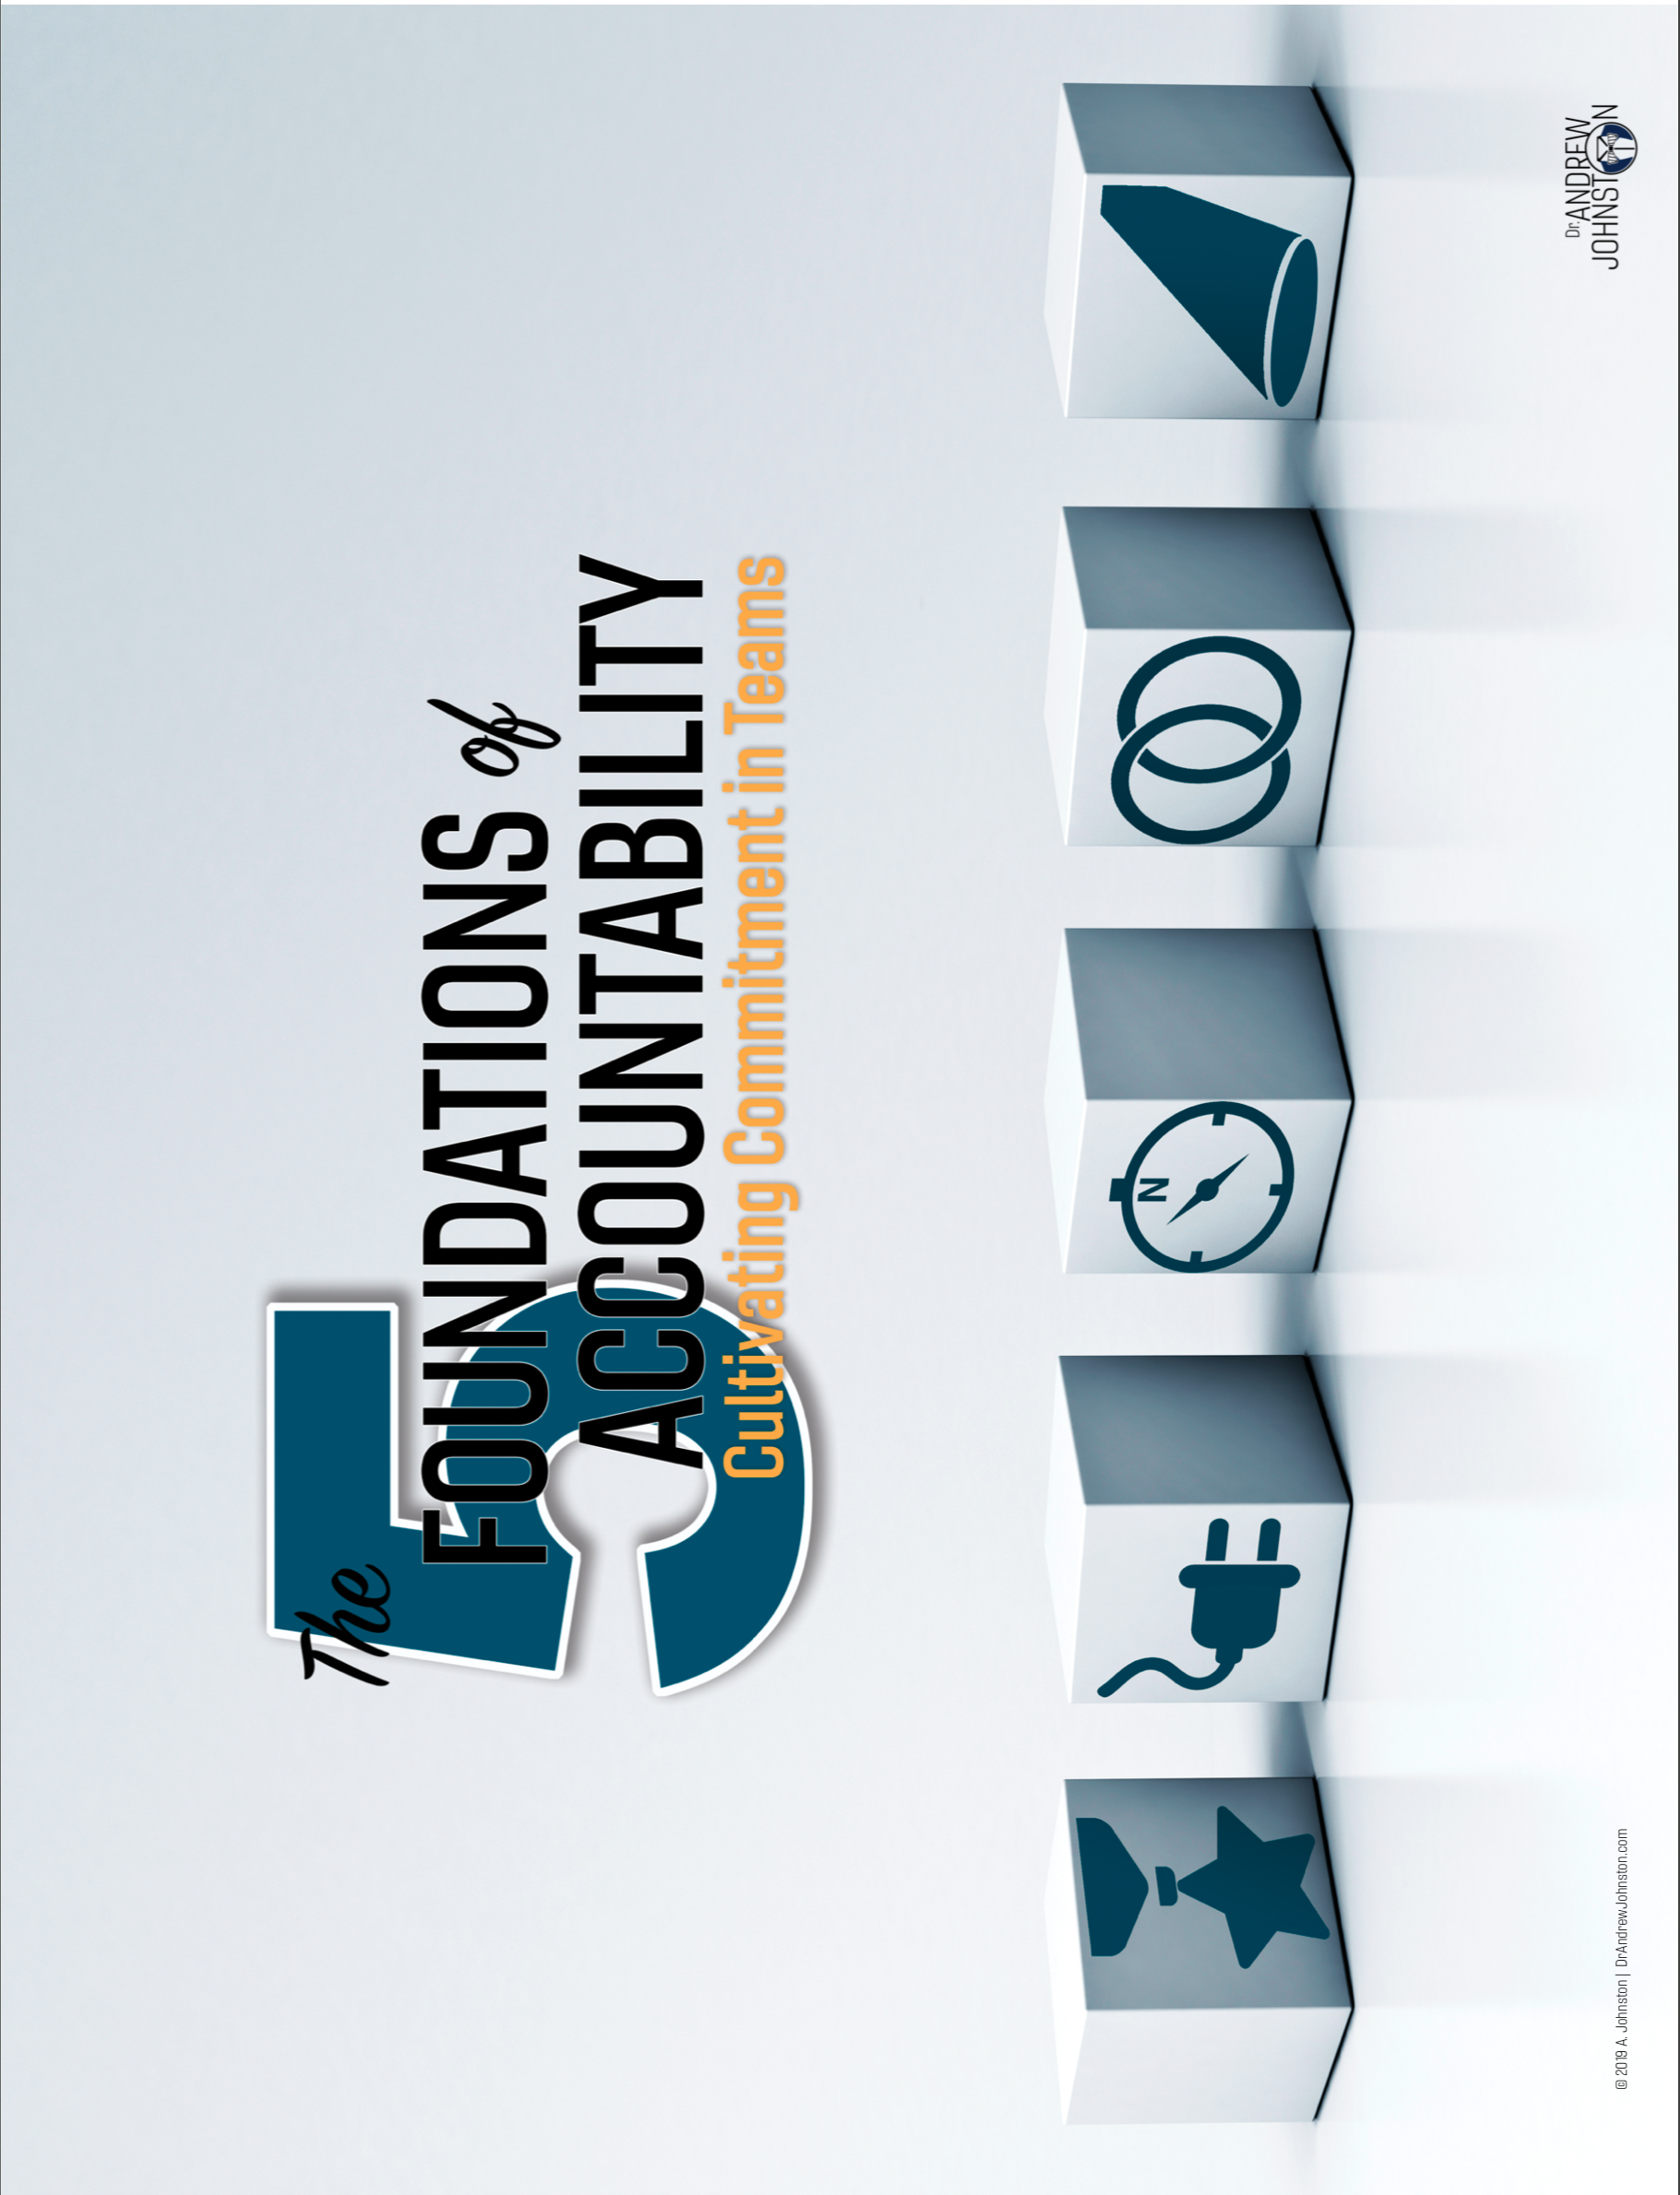 FIve Foundations of Accountability Promo